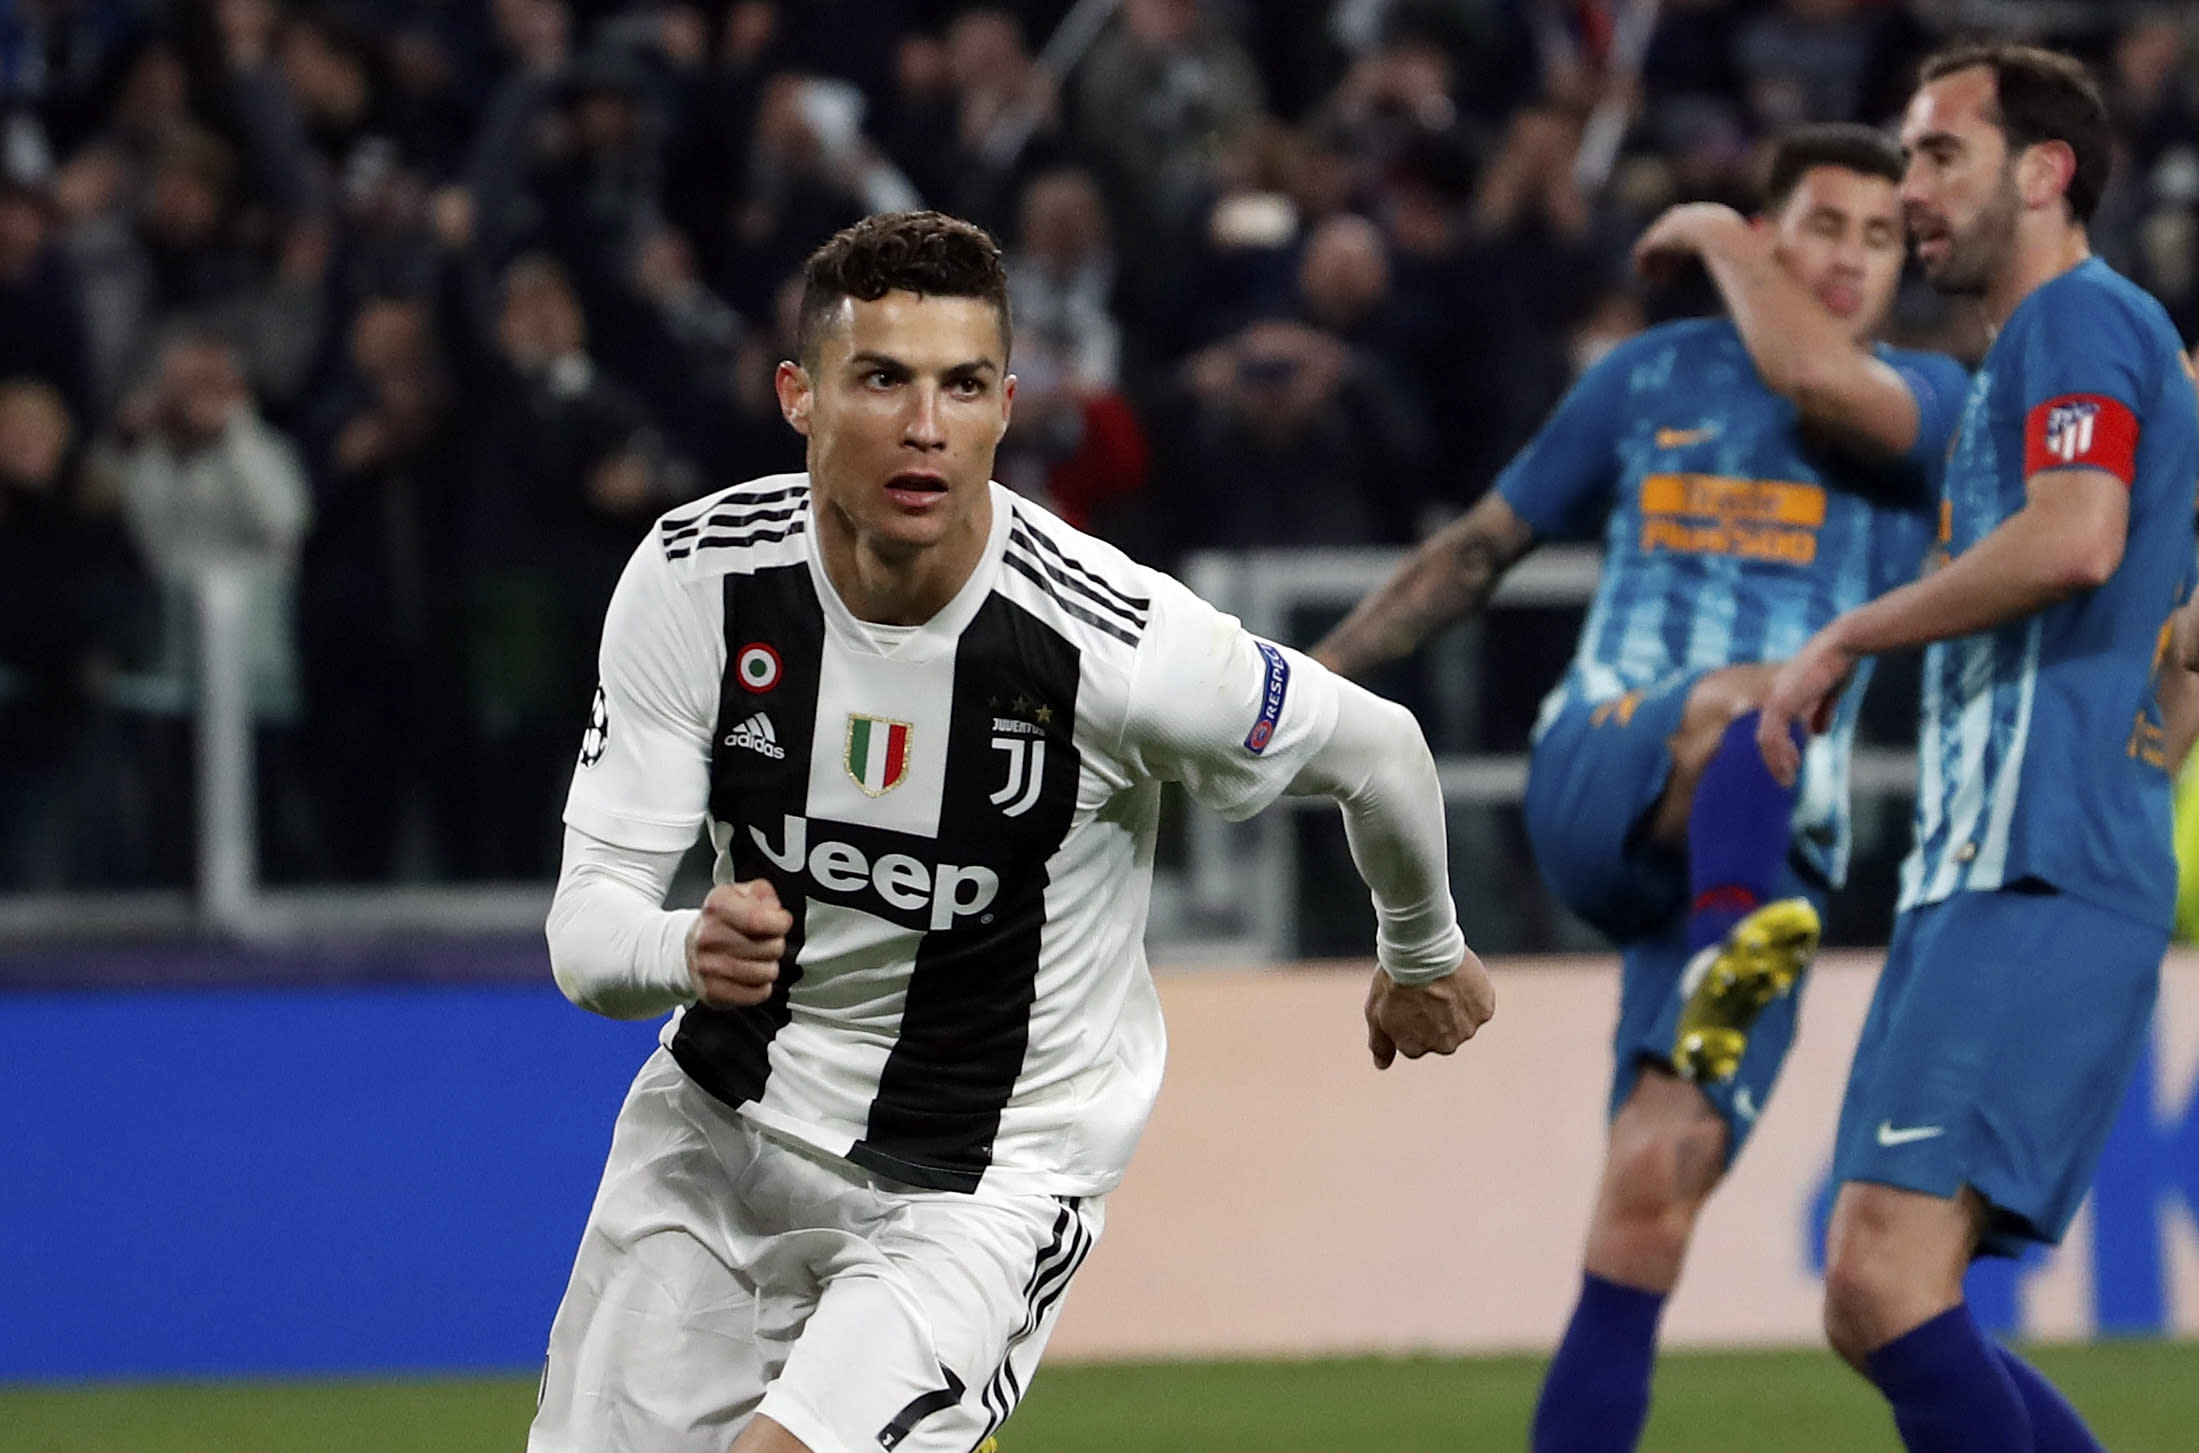 1622543794ad How do we reconcile Ronaldo the soccer star with Ronaldo the man accused of  terrible crimes?